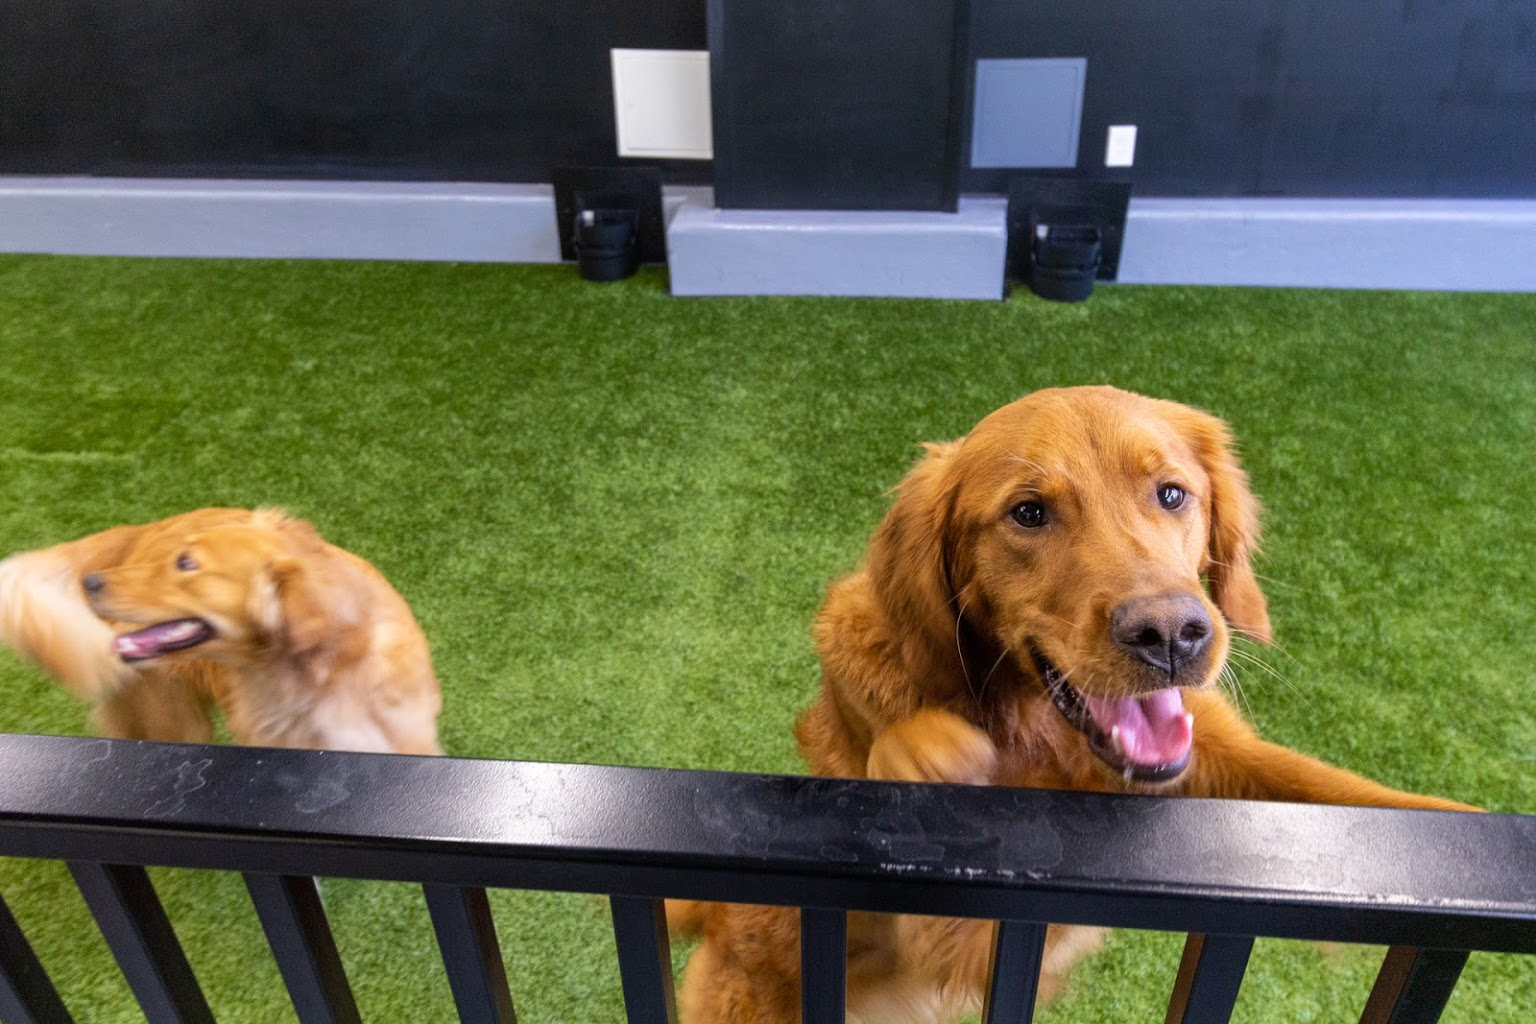 golden retriever dogs Heart + Paw dog care and Veterinary on Germantown ave in Philadelphia, PA